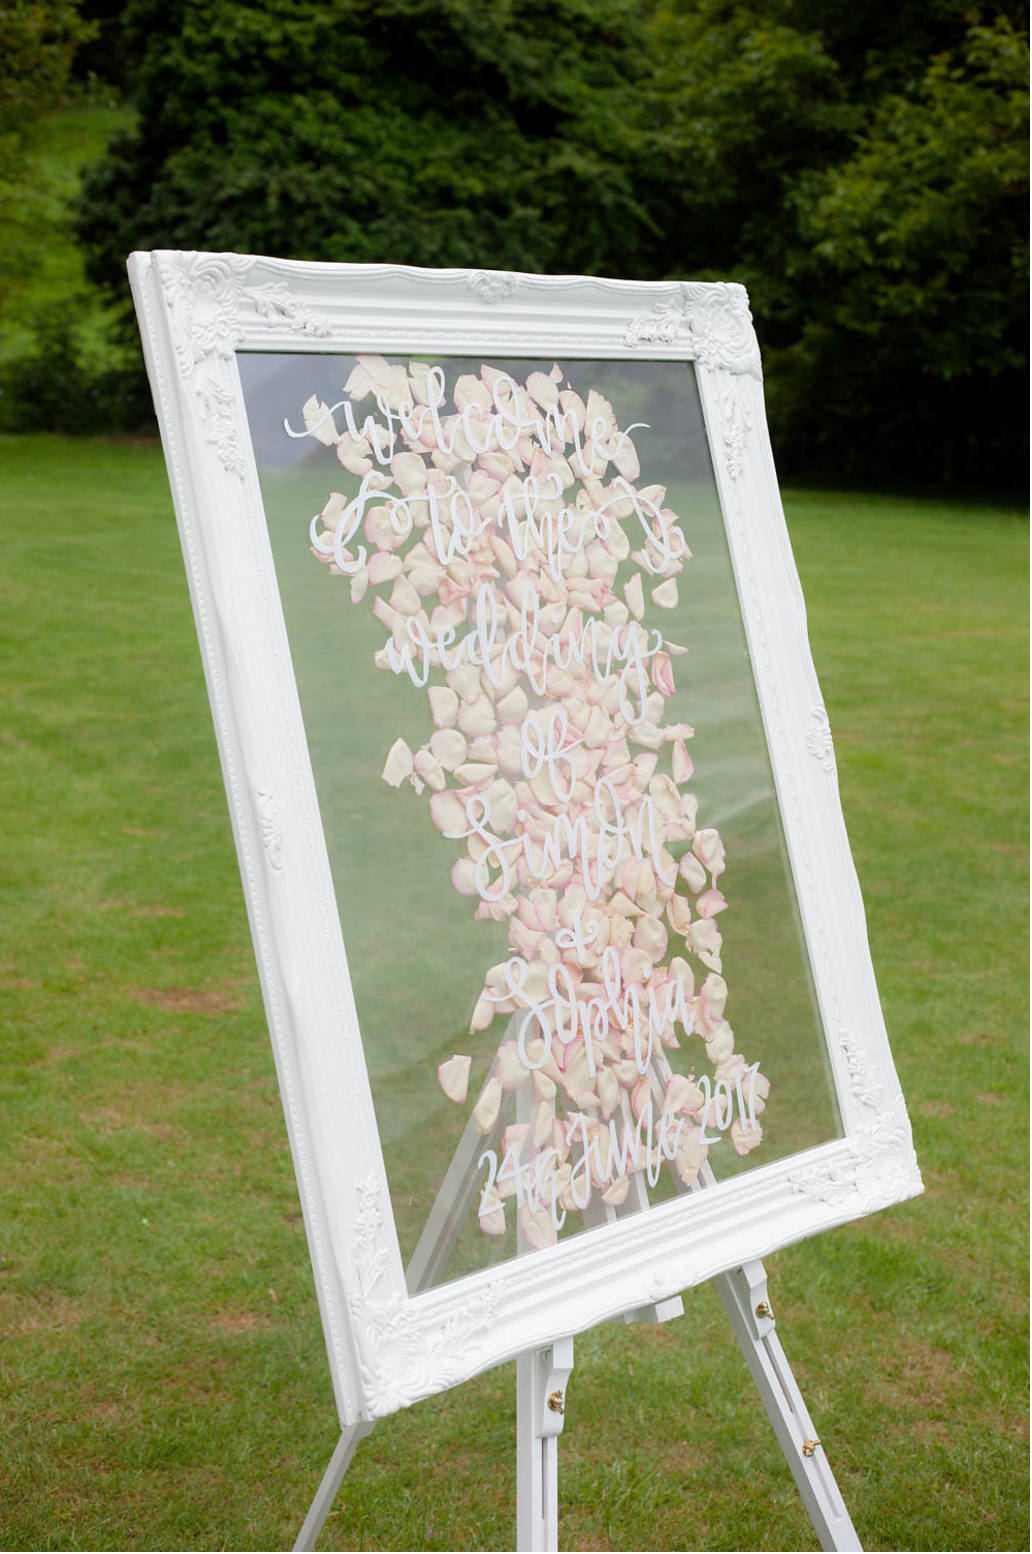 ACRYLIC FRAME from Flingers Party World Bristol Harbourside who offer a huge range of fancy dress costumes and partyware items